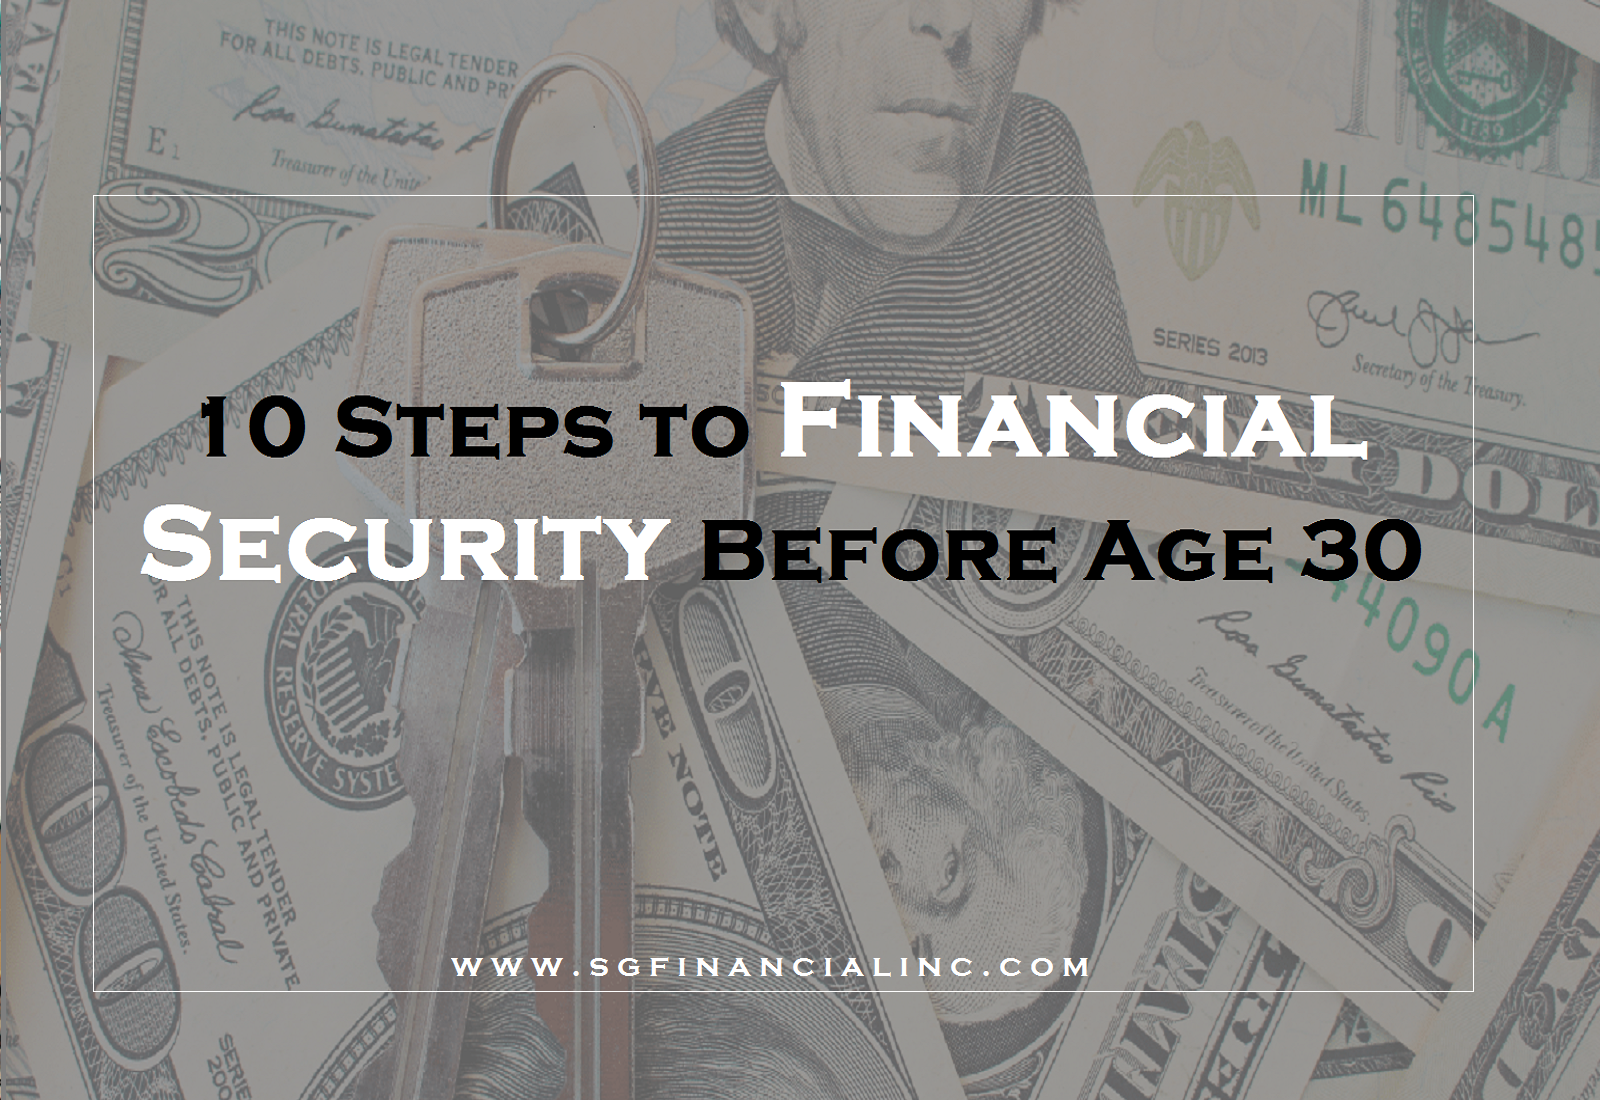 10 Steps to Financial Security Before Age 30